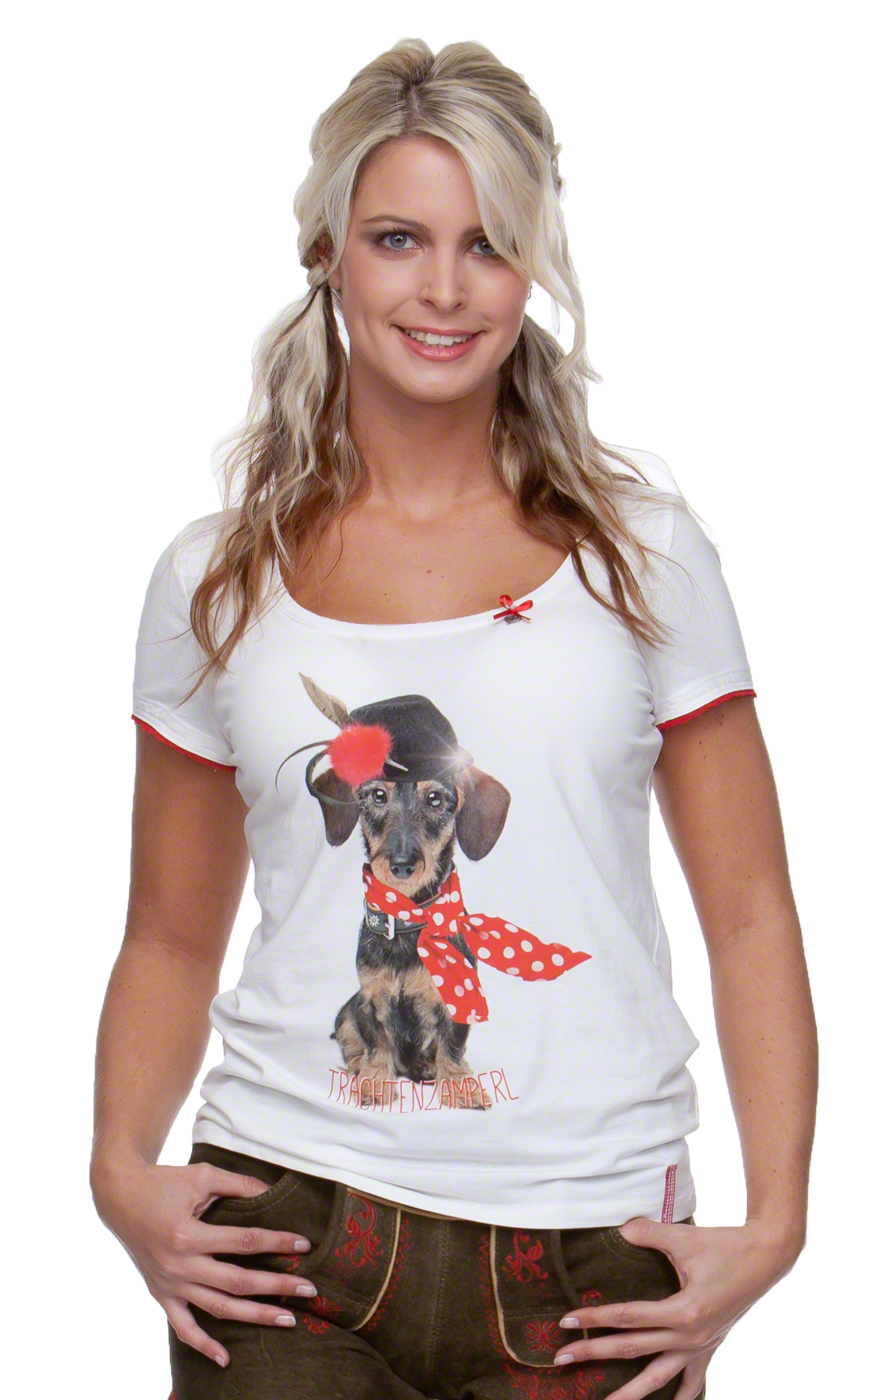 oktoberfest t shirts for bavarian girls oktoberfest. Black Bedroom Furniture Sets. Home Design Ideas